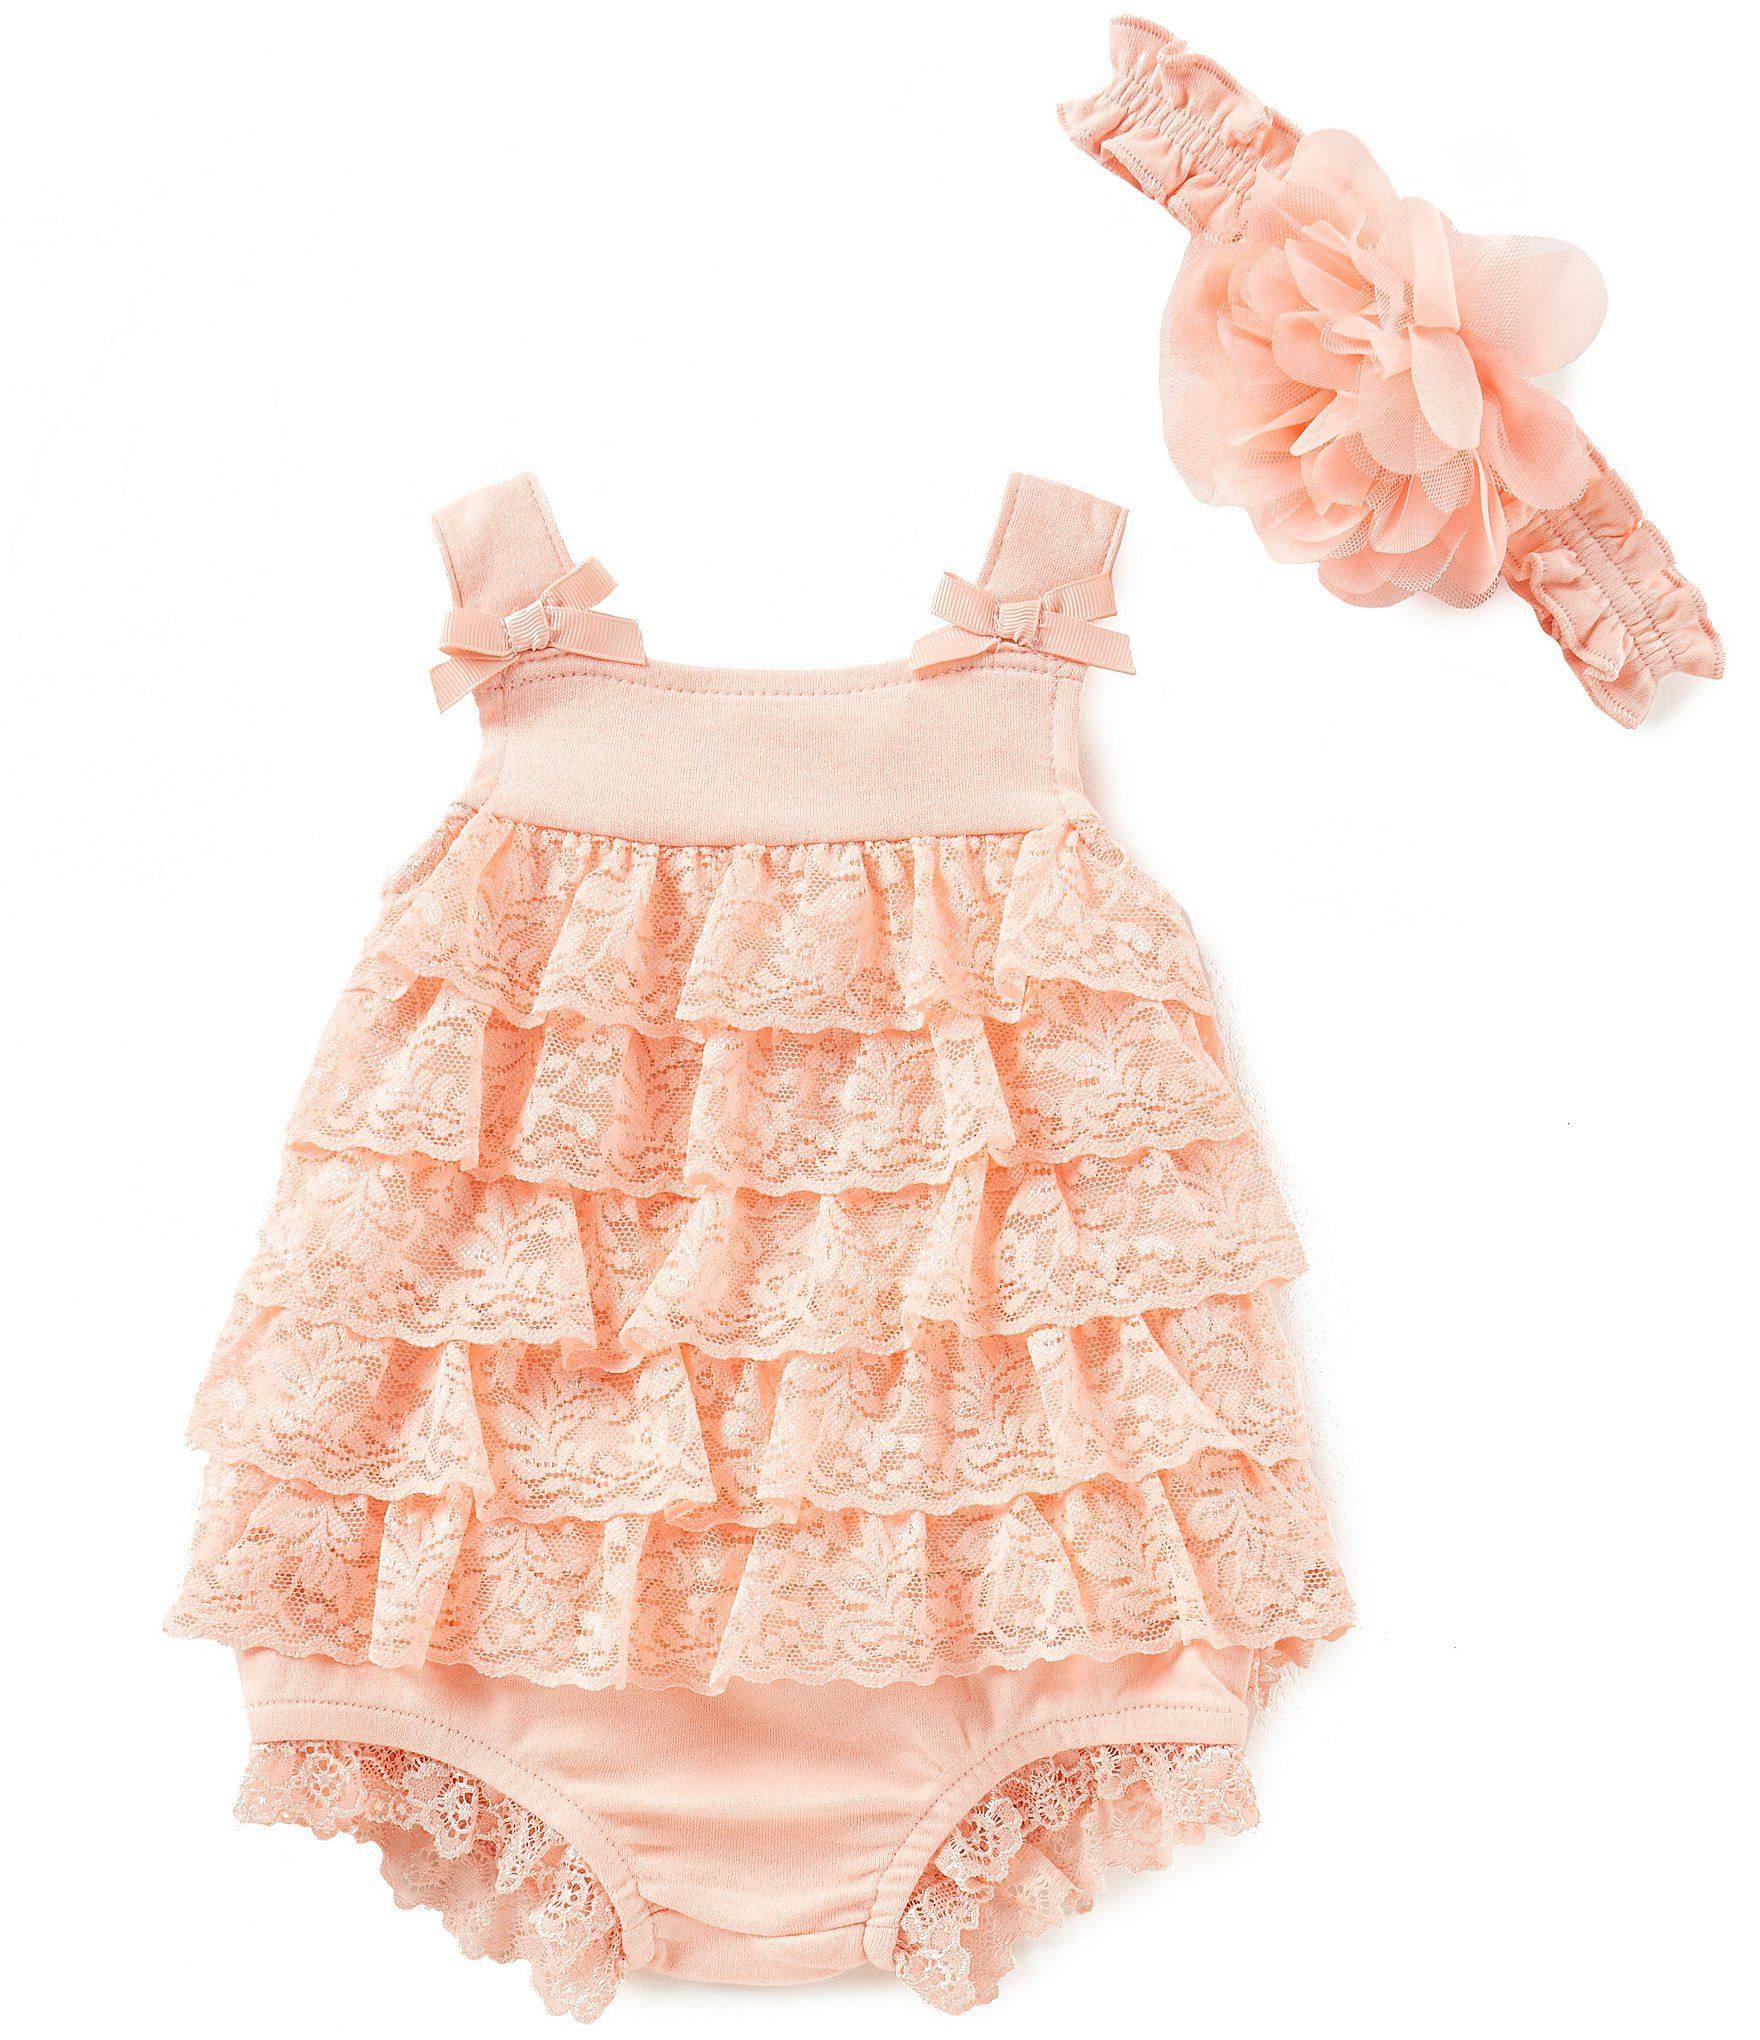 Shop for Starting Out Baby Girls Newborn-6 Months Lace Ruffled Top